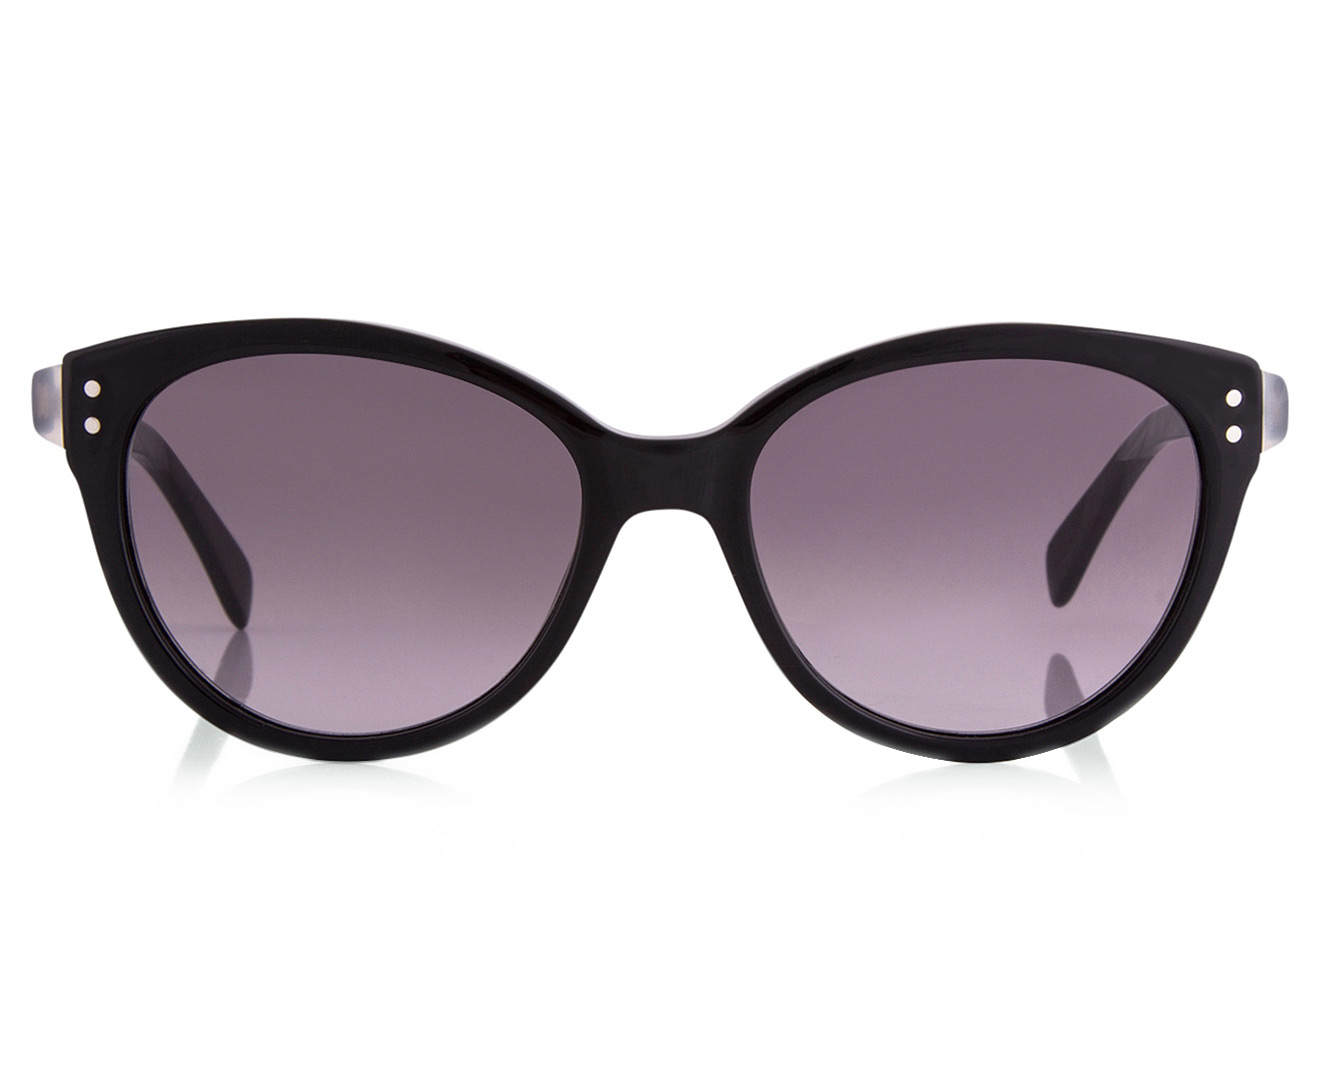 Marc by Marc Jacobs Women's Sunglasses